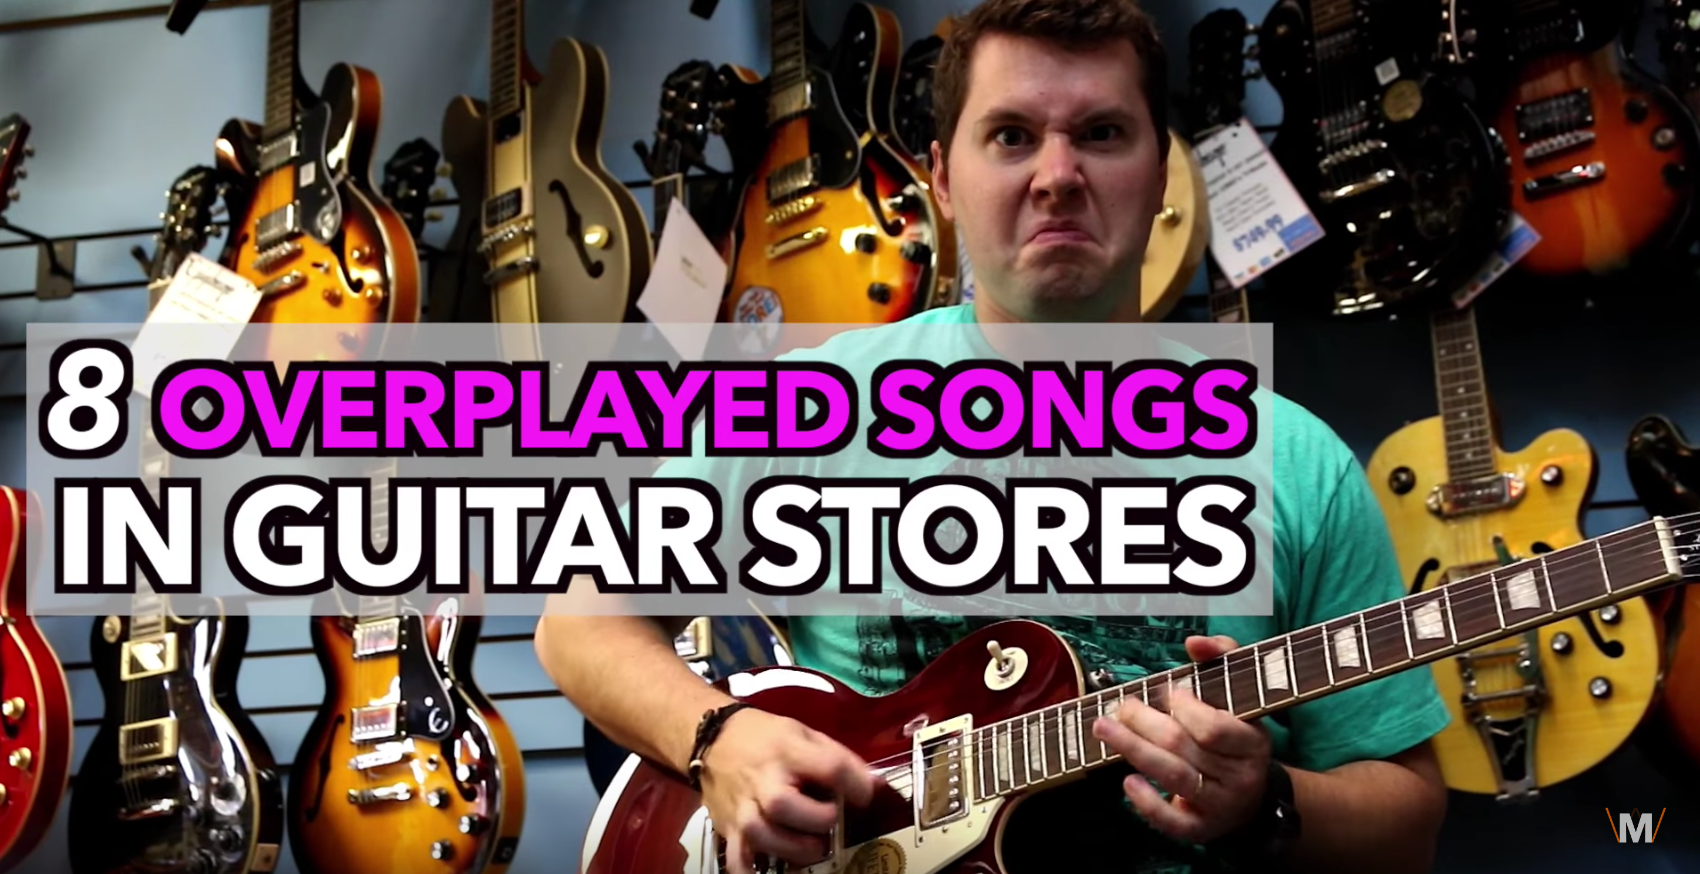 8 guitar store songs to avoid